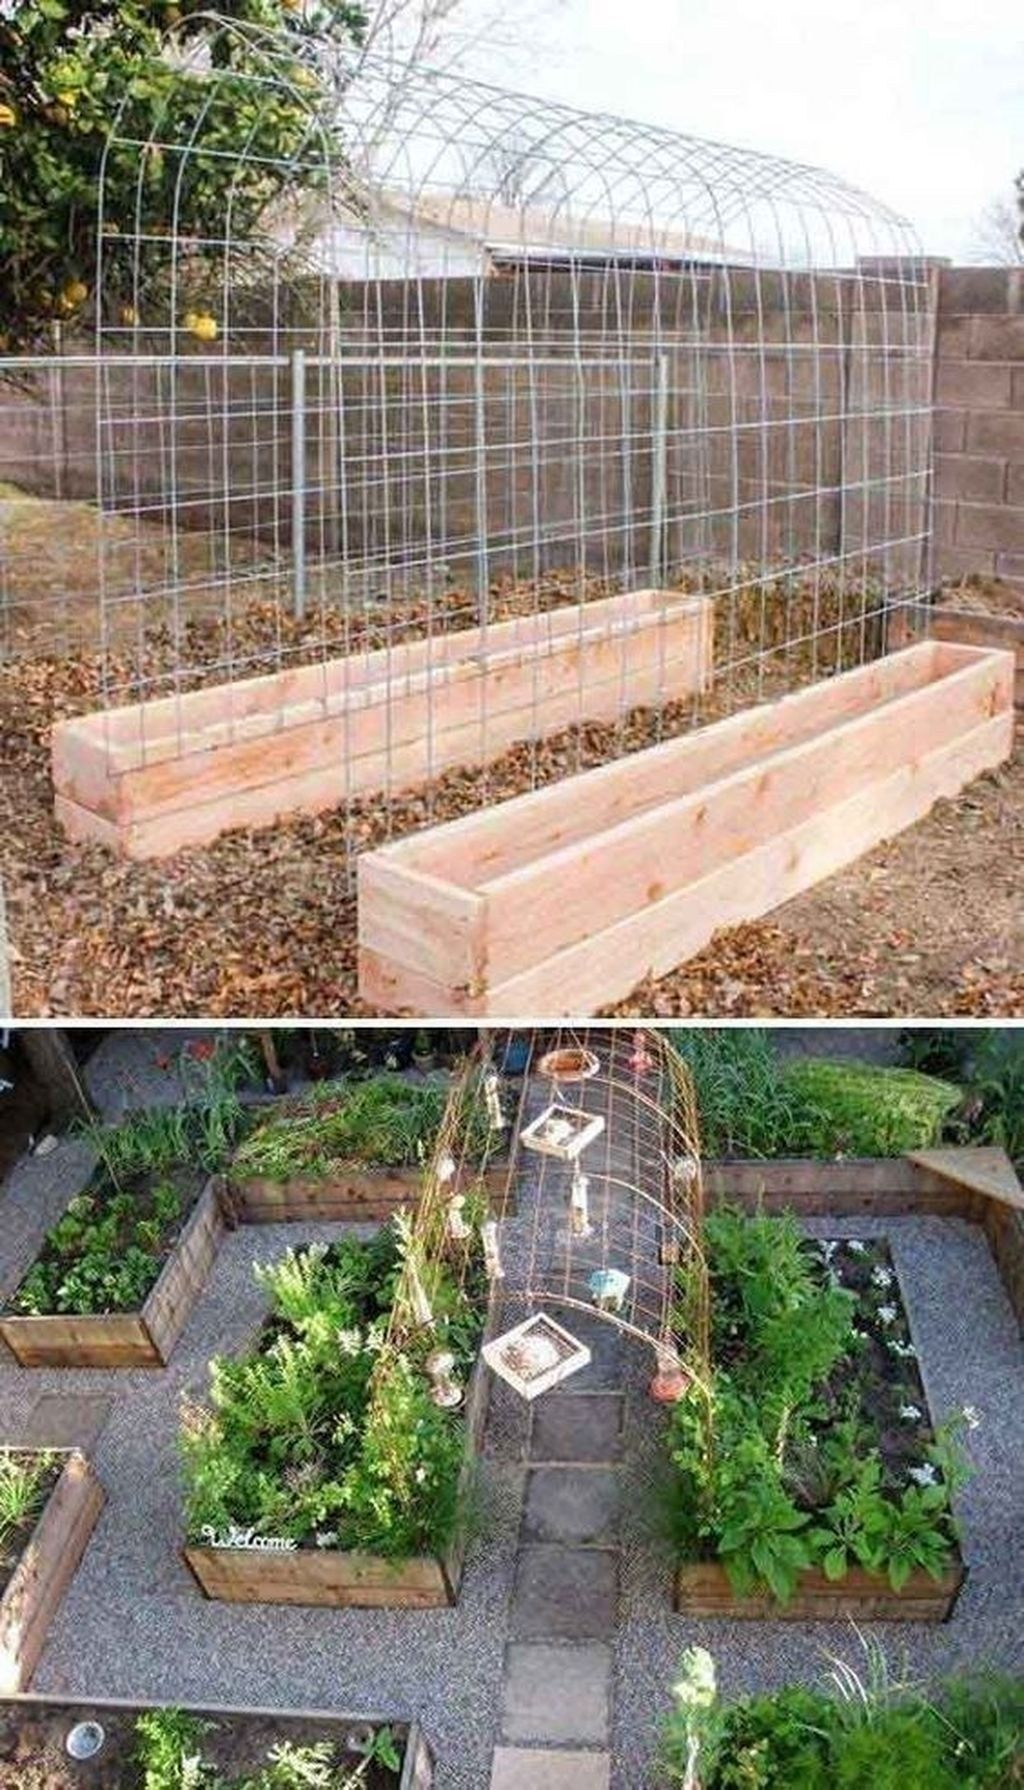 20+ Comfy Diy Raised Garden Bed Ideas That Looks Cool is part of Vegetable garden design, Small vegetable gardens, Backyard vegetable gardens, Garden layout, Vegetable garden raised beds, Raised garden - Building raised garden beds has many rewards to it  It's the kind of arrangement in creating gardens that any average …